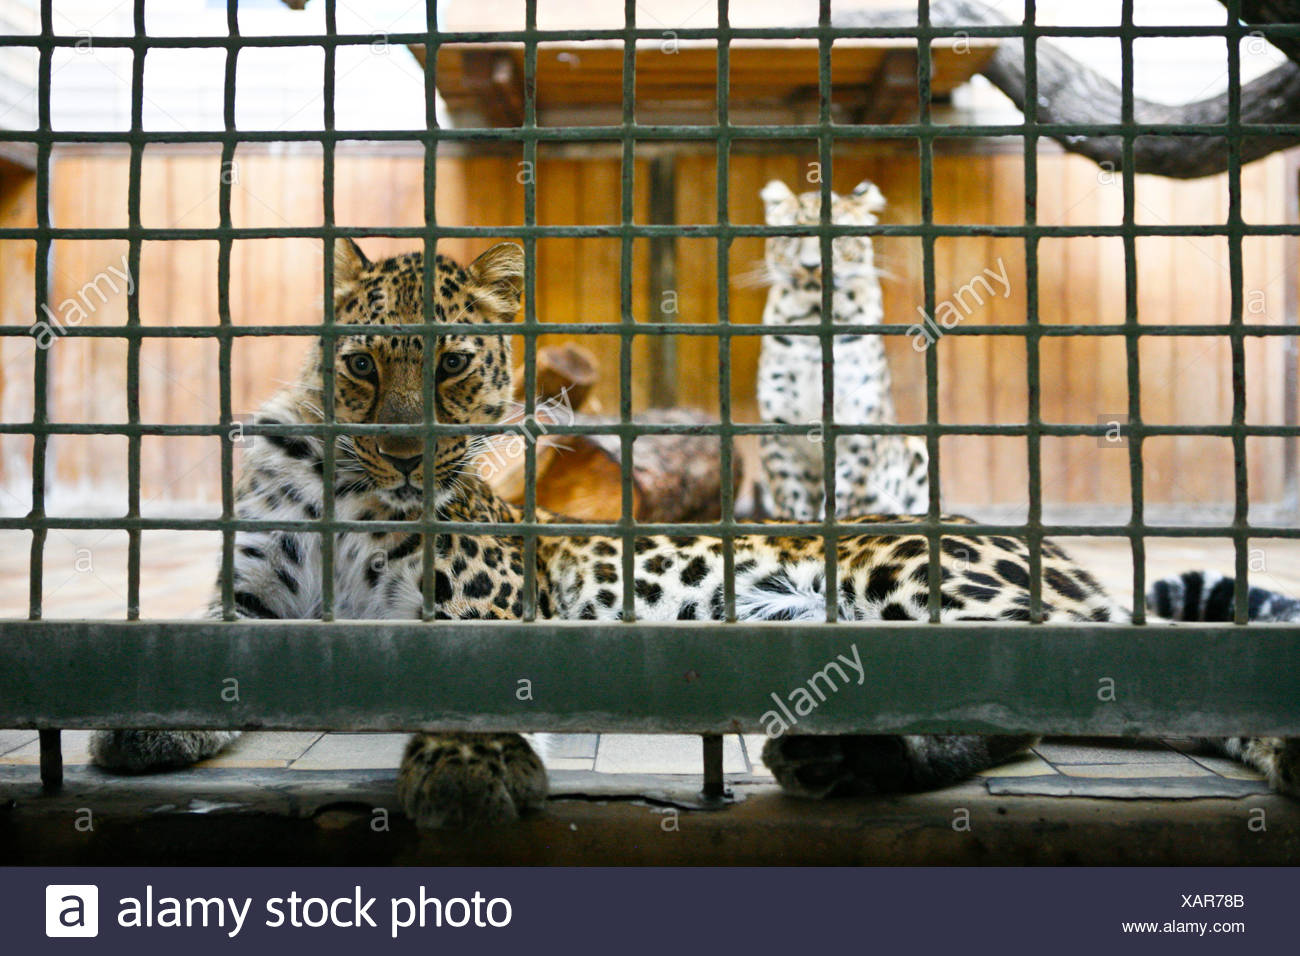 Amur Leopard (Panthera pardus orientalis) in a small cage at Tiergarten Berlin zoo, Berlin, Berlin, Germany - Stock Image